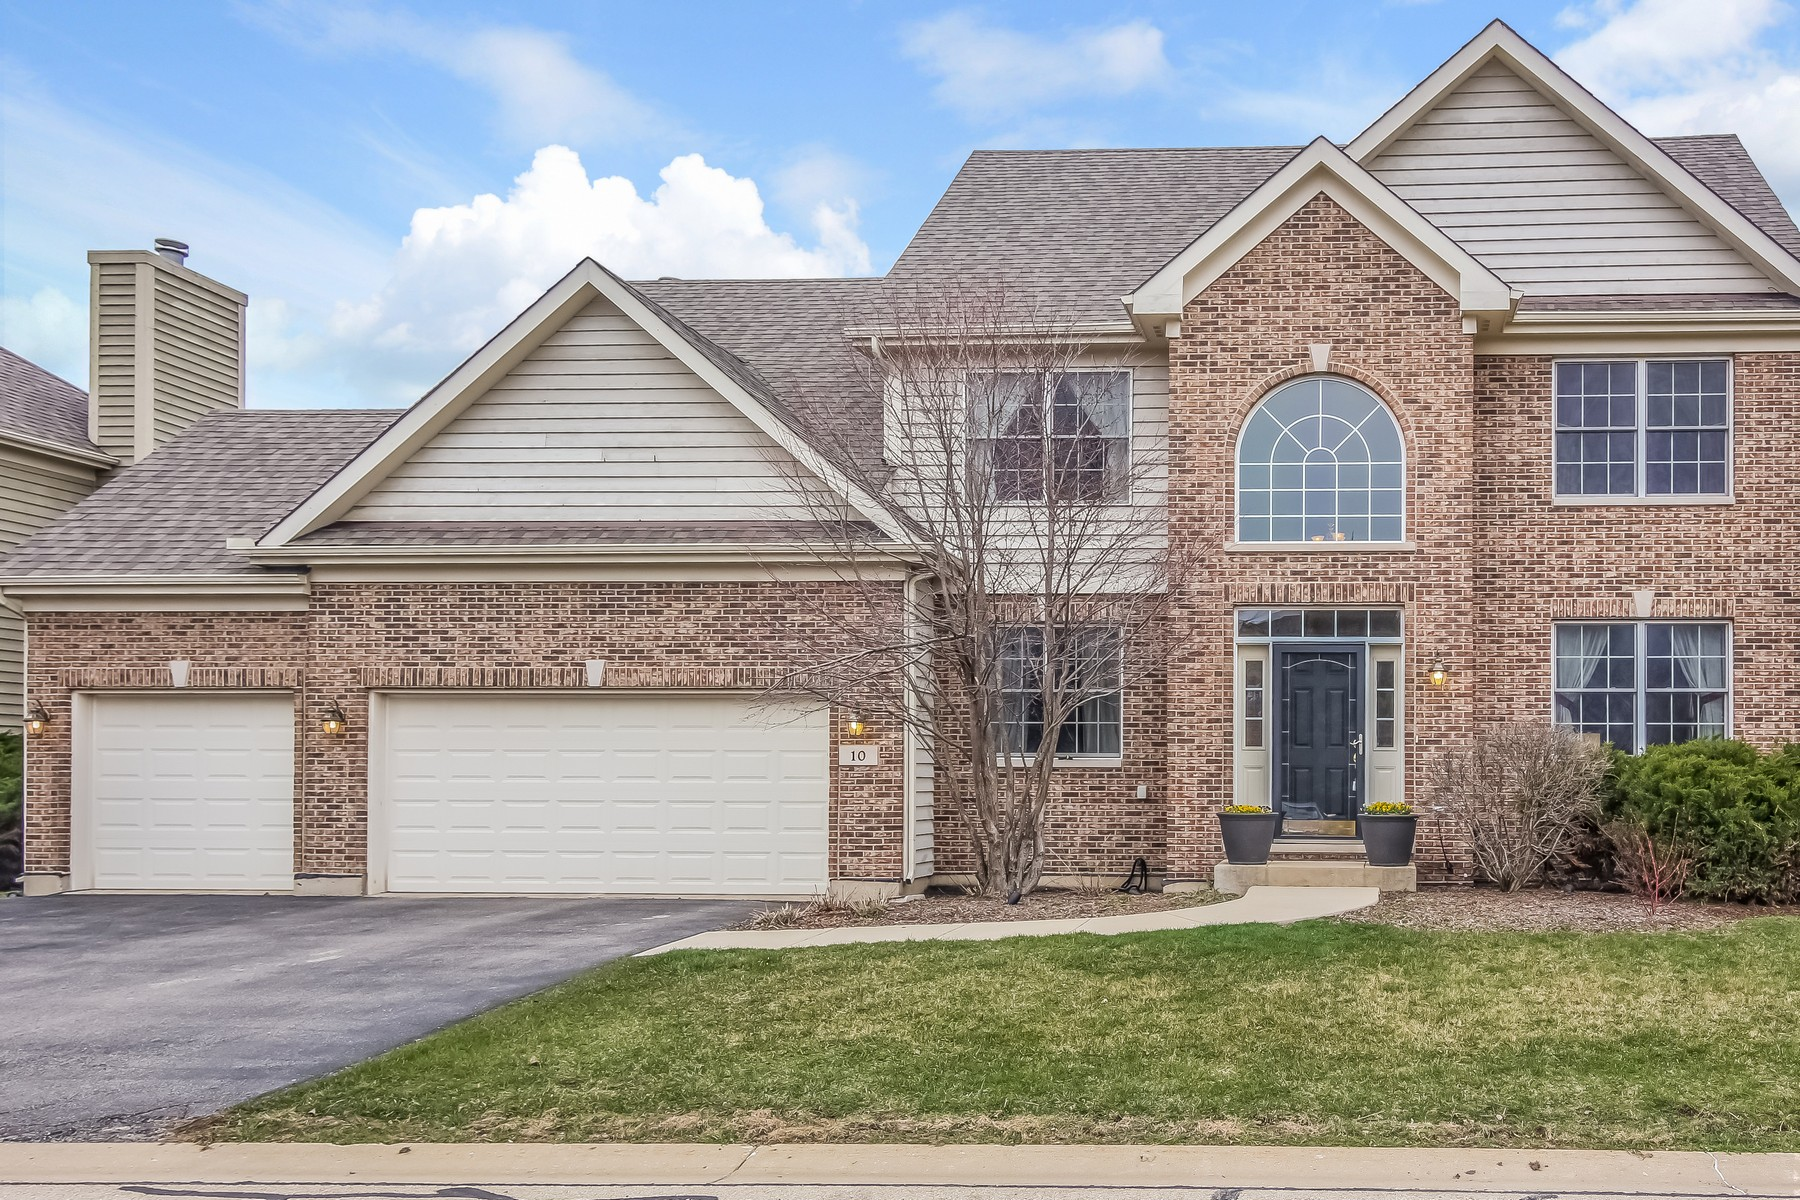 Single Family Home for Sale at GOLF COMMUNITY 10 Point O Woods Court Lake In The Hills, Illinois, 60156 United States